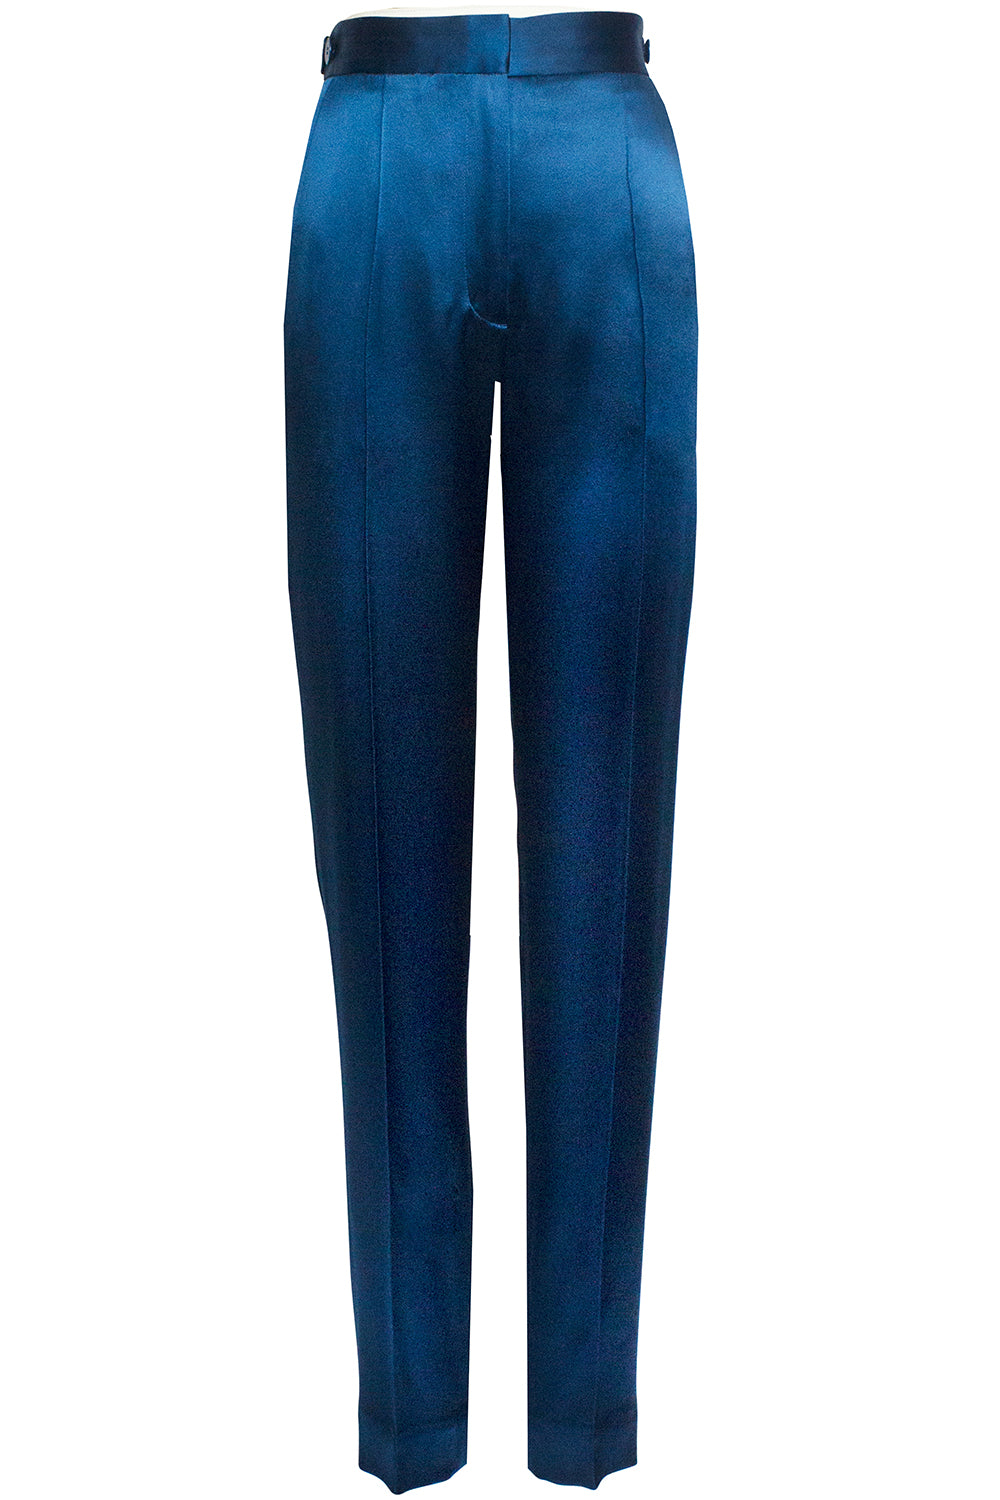 Elena Slim Leg Trousers in Teal Blue